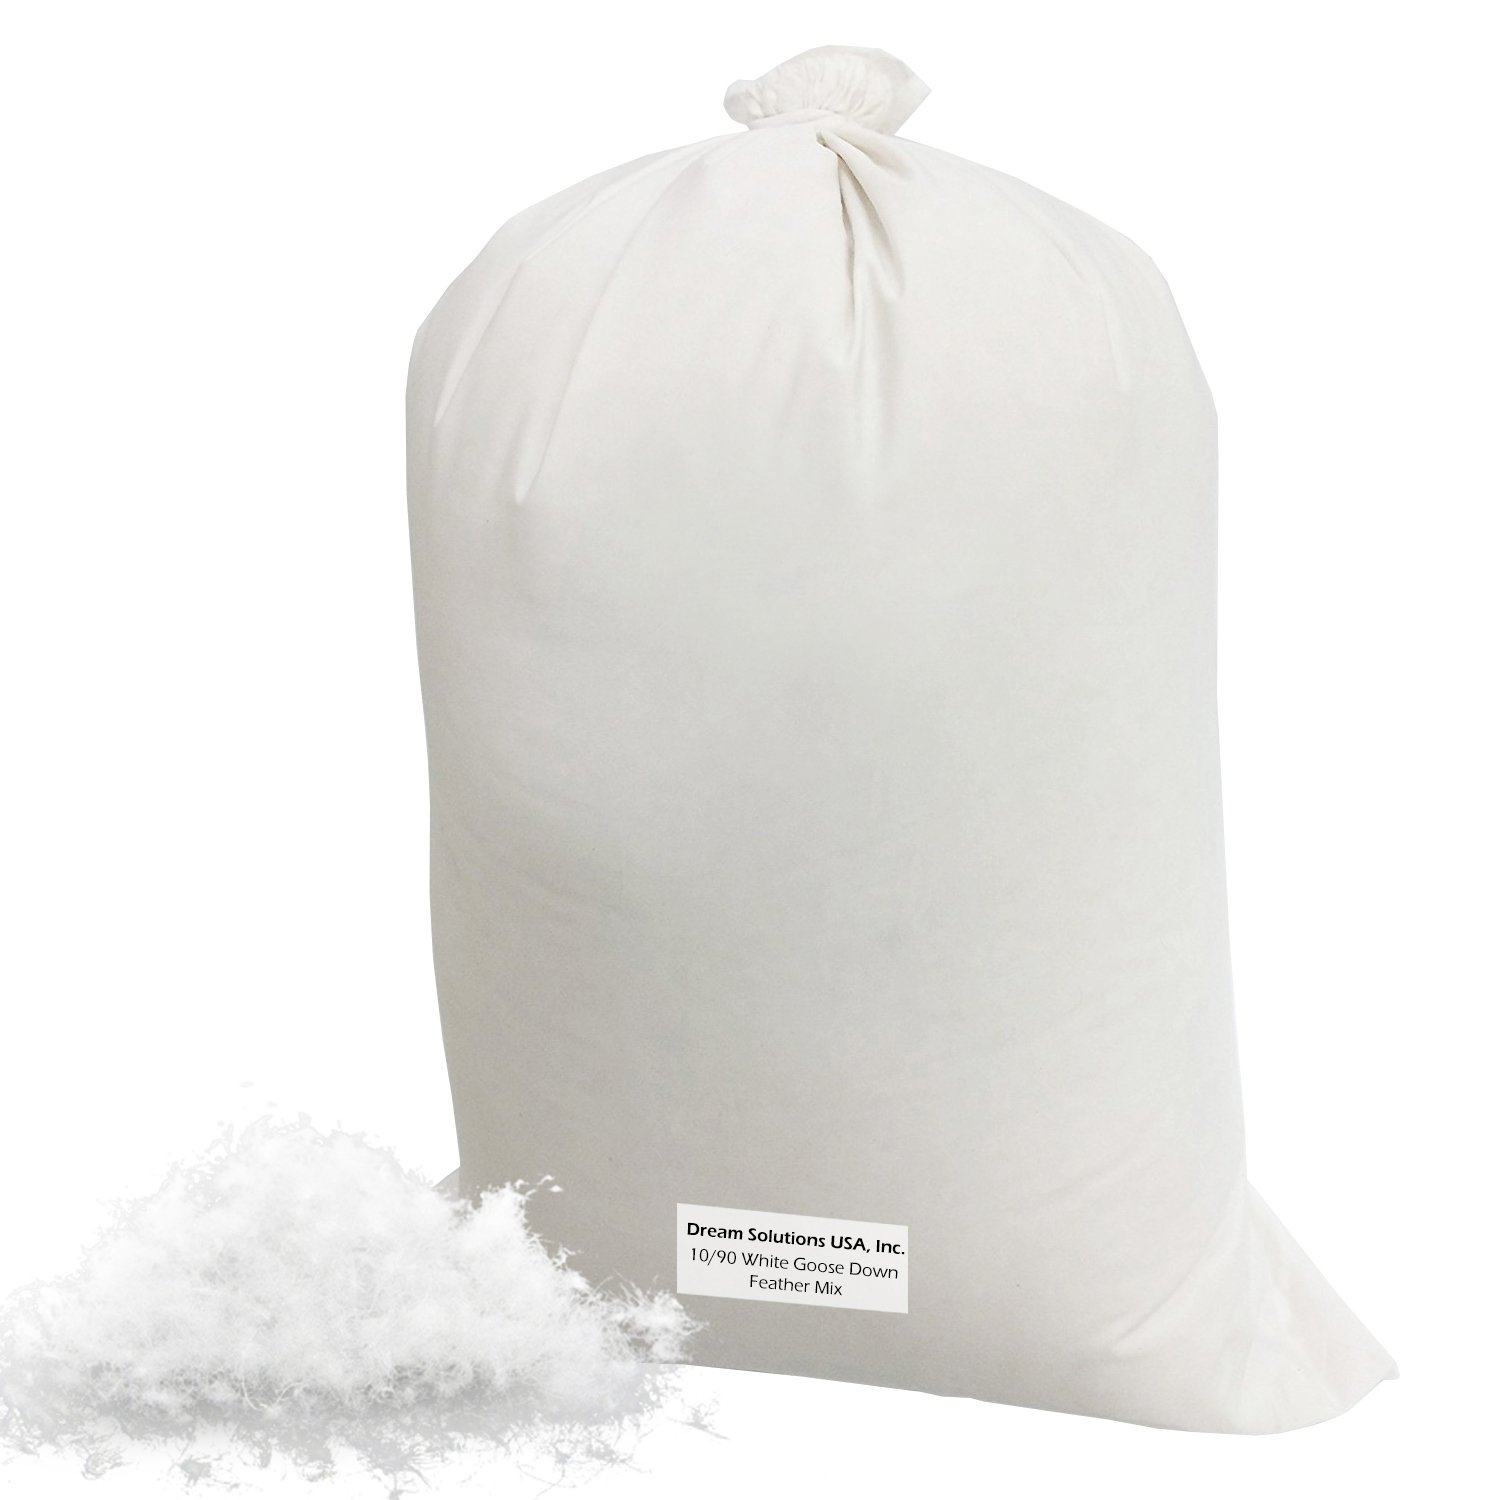 Dream Solutions USA Brand Bulk Goose Down Pillow Stuffing - Filling Feathers - 10/90 White (1/2 LB) - Fill Stuffing Comforters, Pillows, Jackets and More - Ultra-Plush Hungarian Softness 100WGDF1/2LB